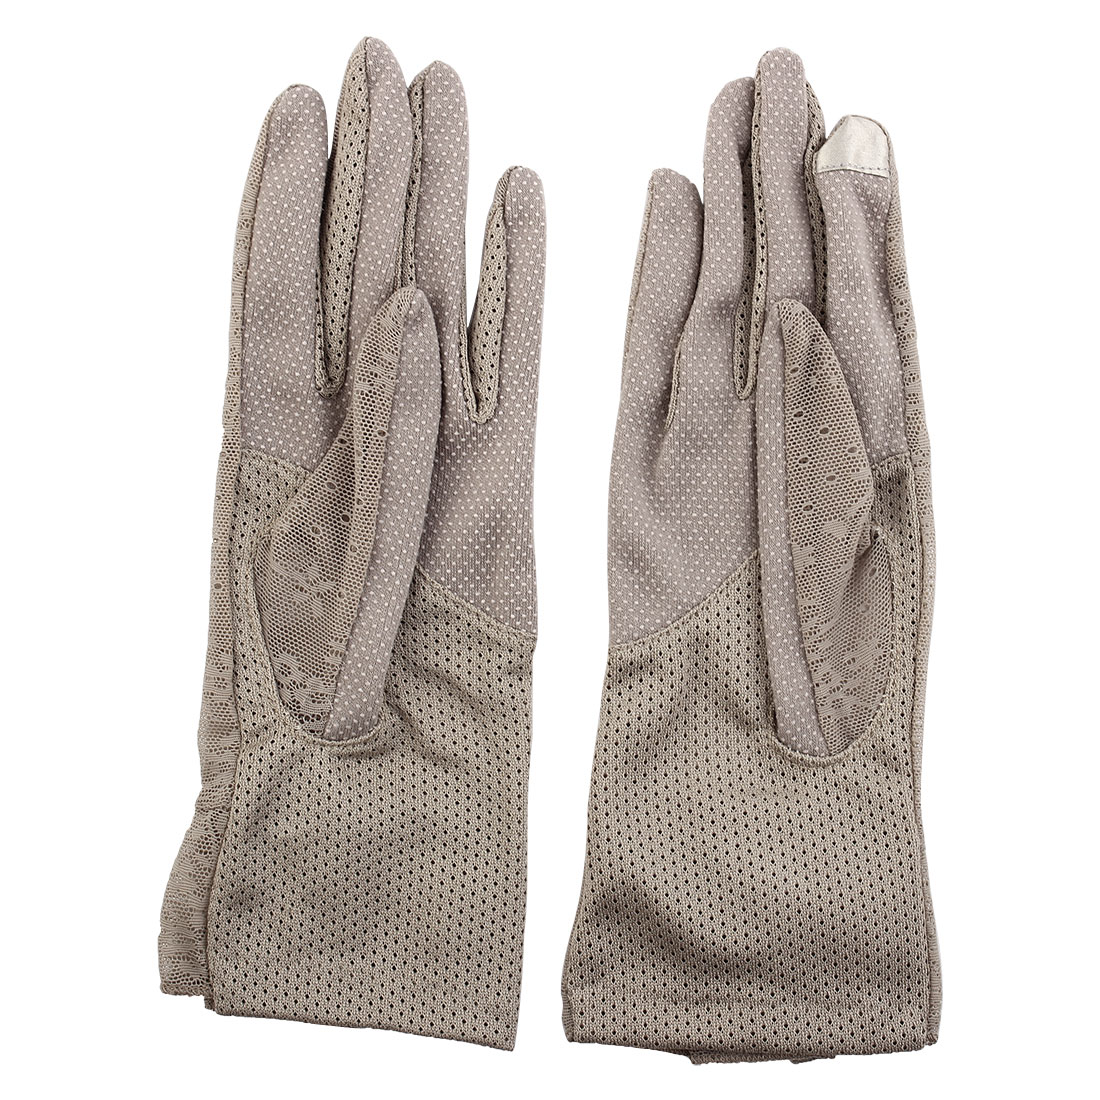 Outdoor Travel Hiking Floral Lace Decor Wrist Length Full Finger Sun Resistant Gloves Khaki Pair for Women